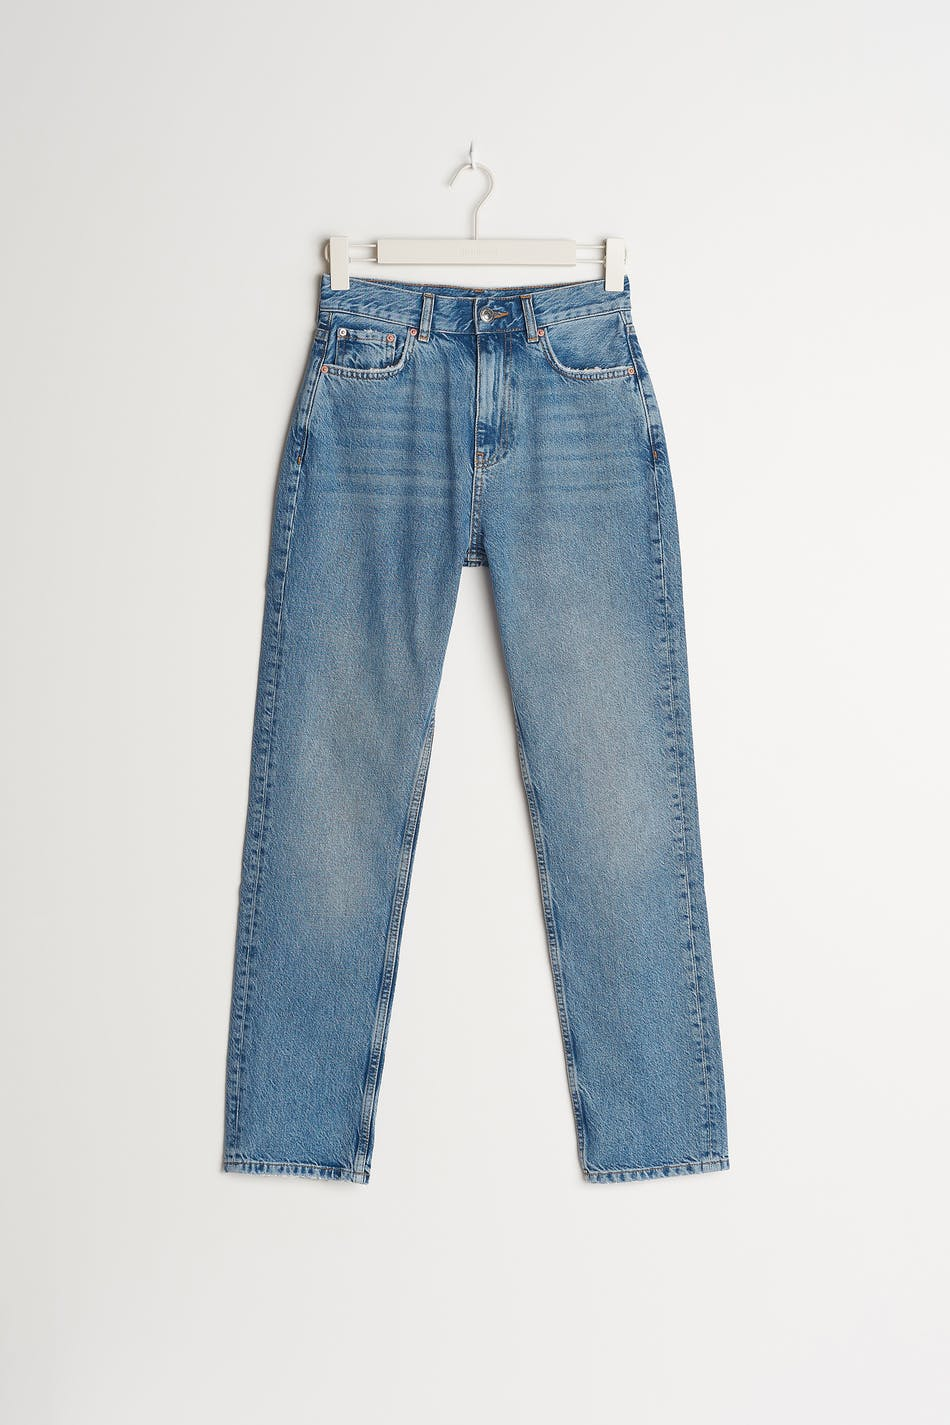 Gina Tricot Full petite length jeans